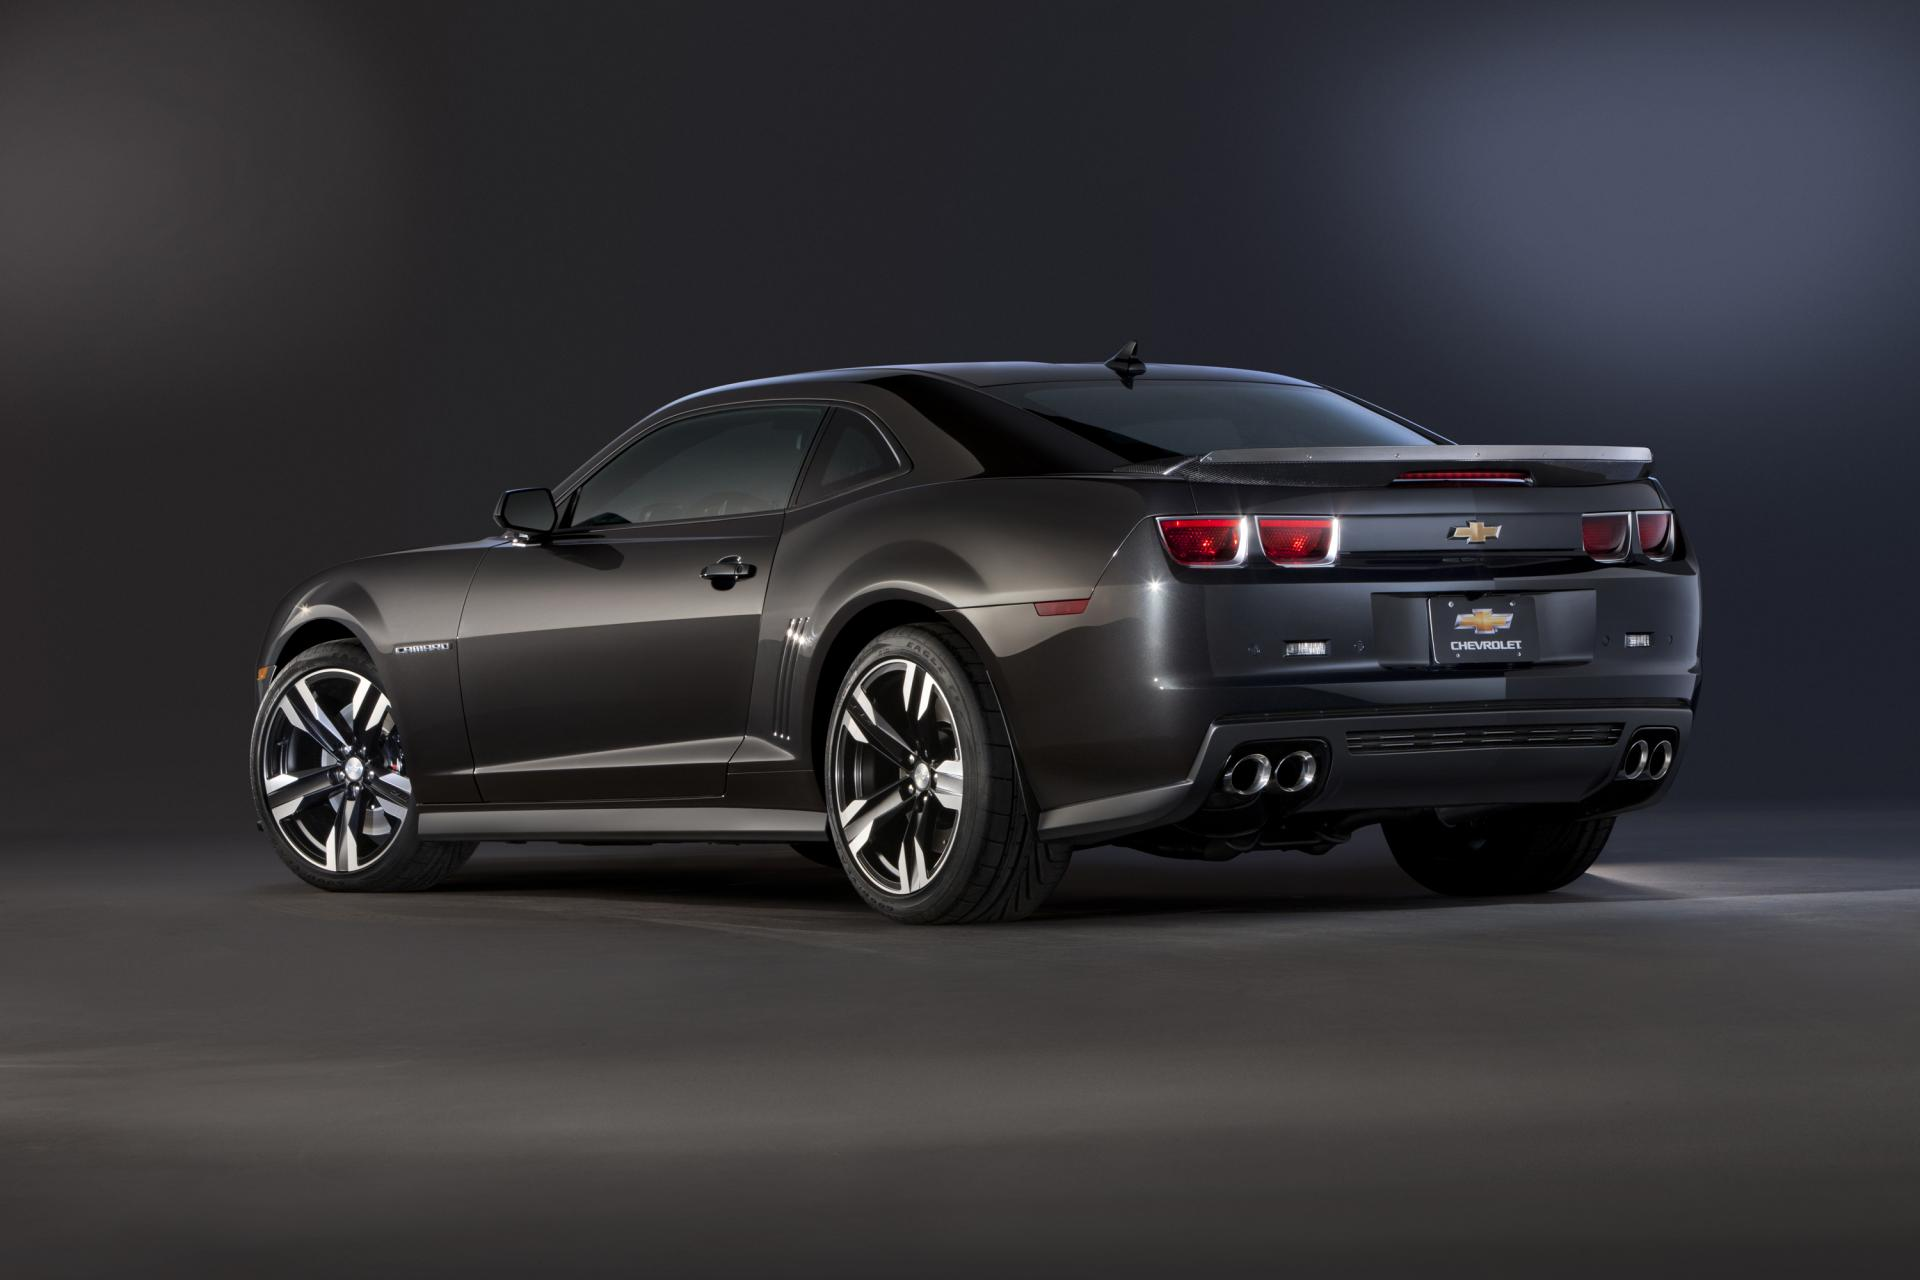 2012 Chevrolet Camaro Zl1 Carbon Concept News And